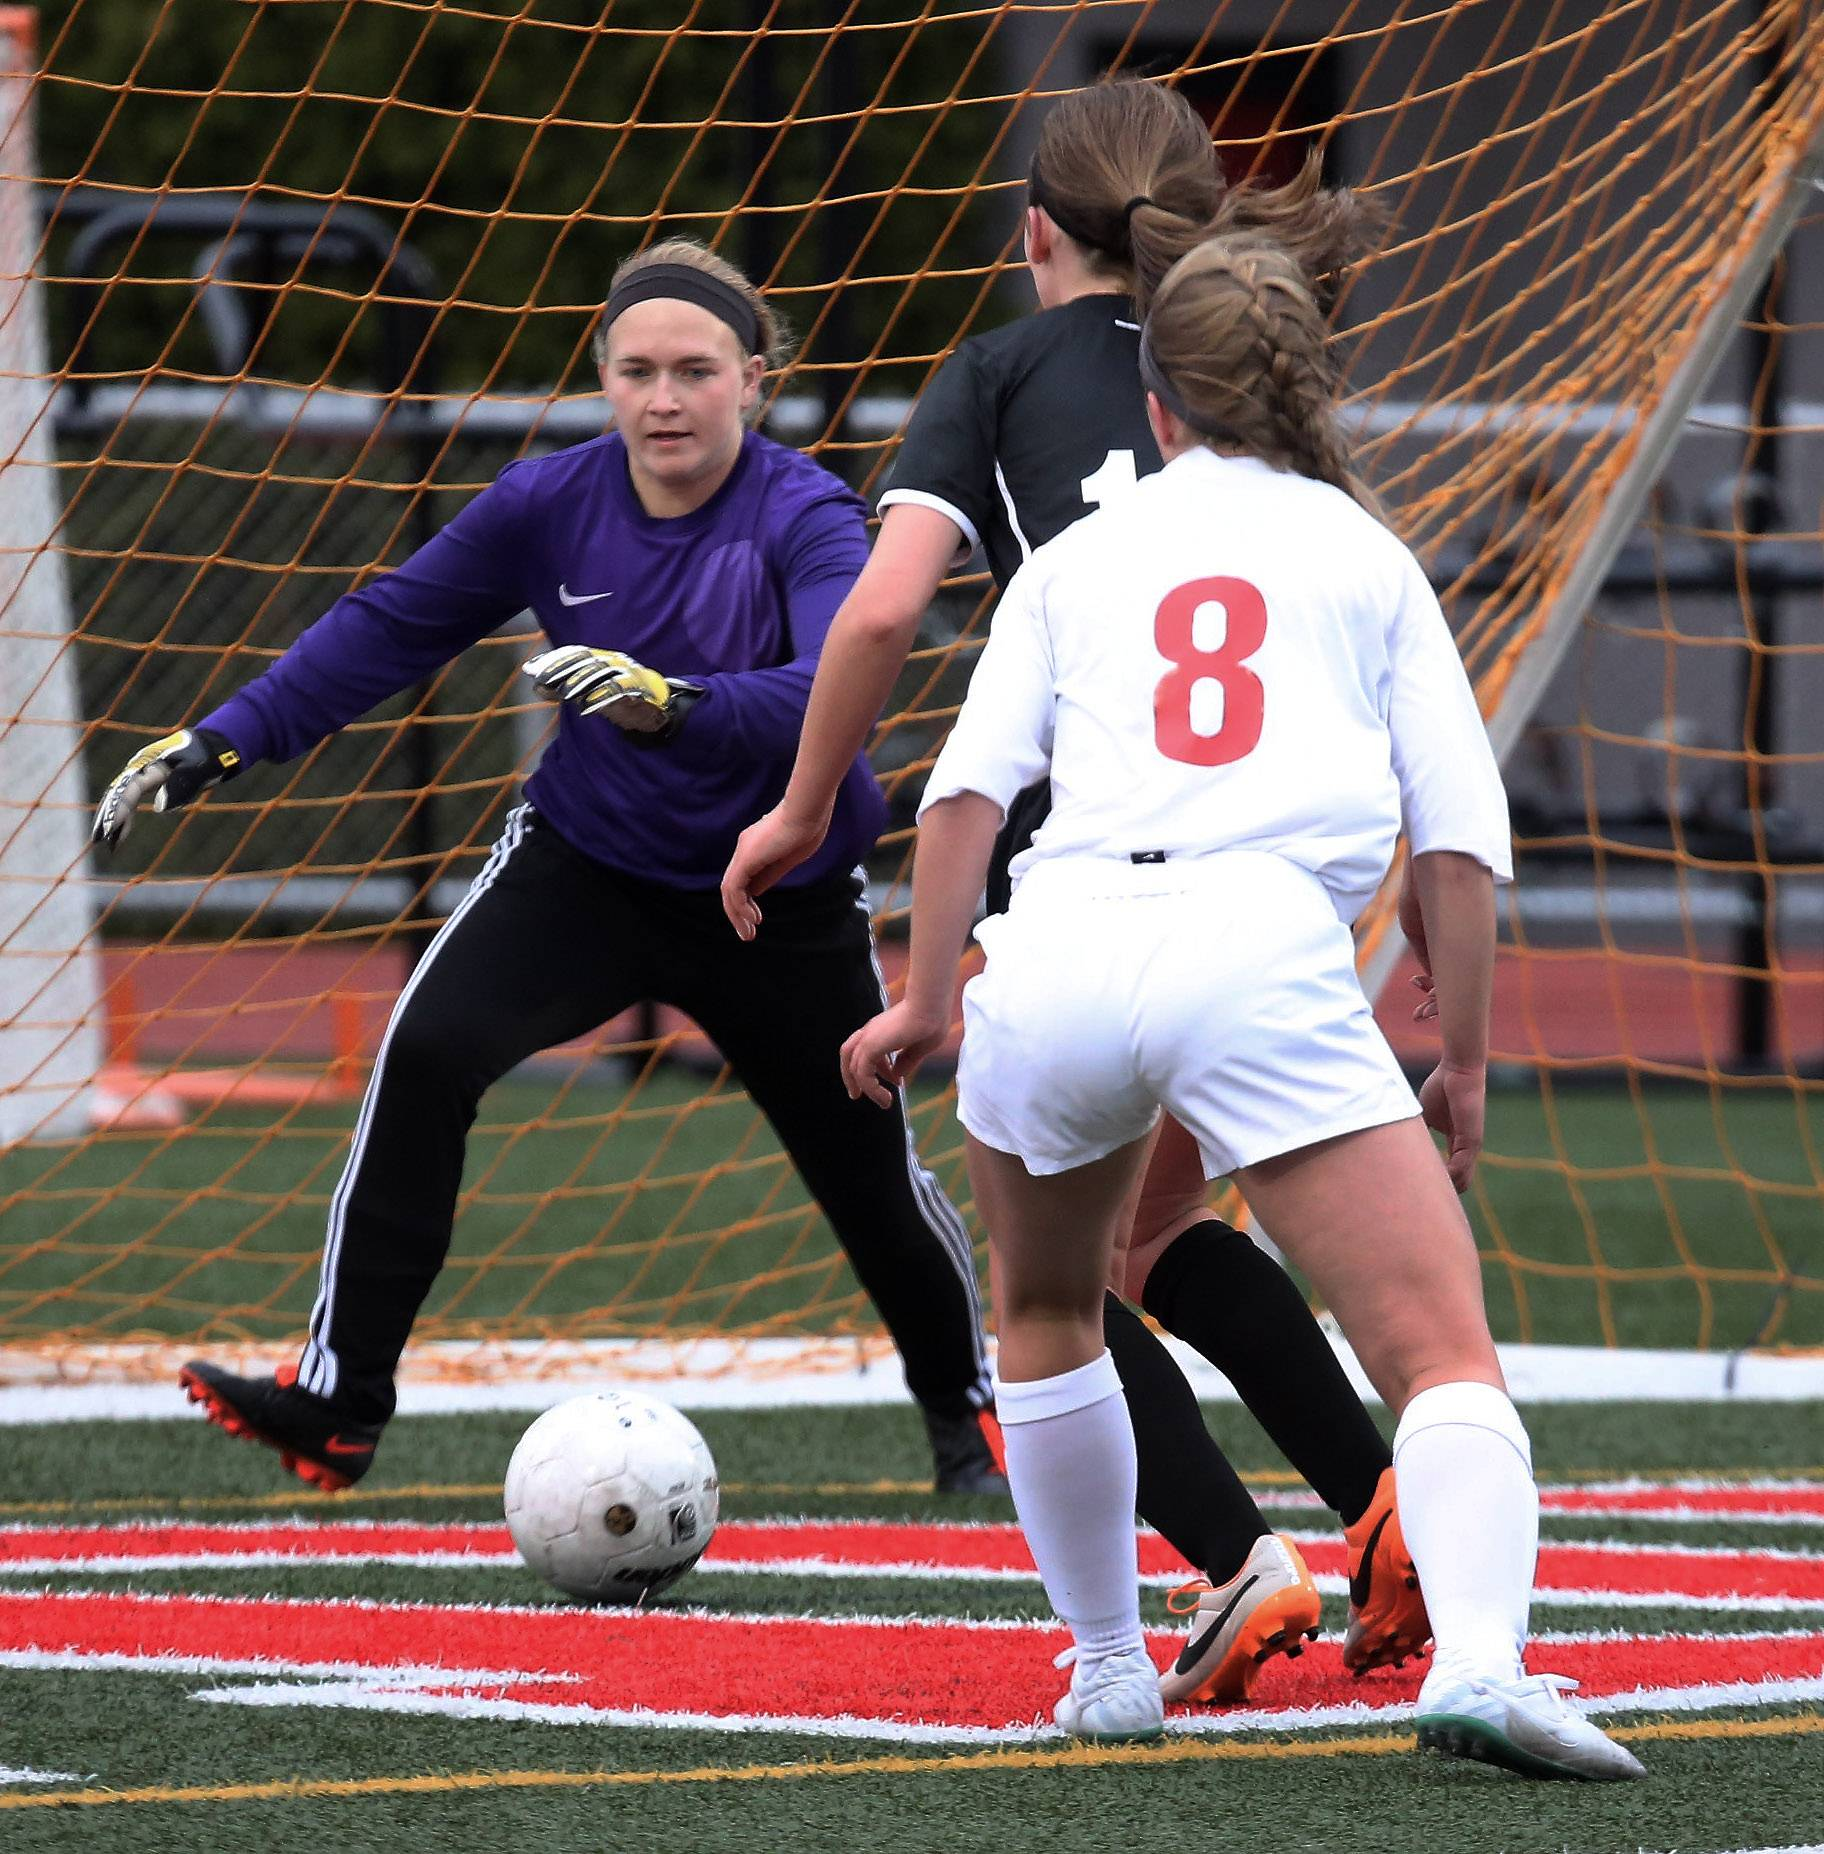 Libertyville goalie Krista Erlandson comes out to block a shot at Mundelein on Tuesday.